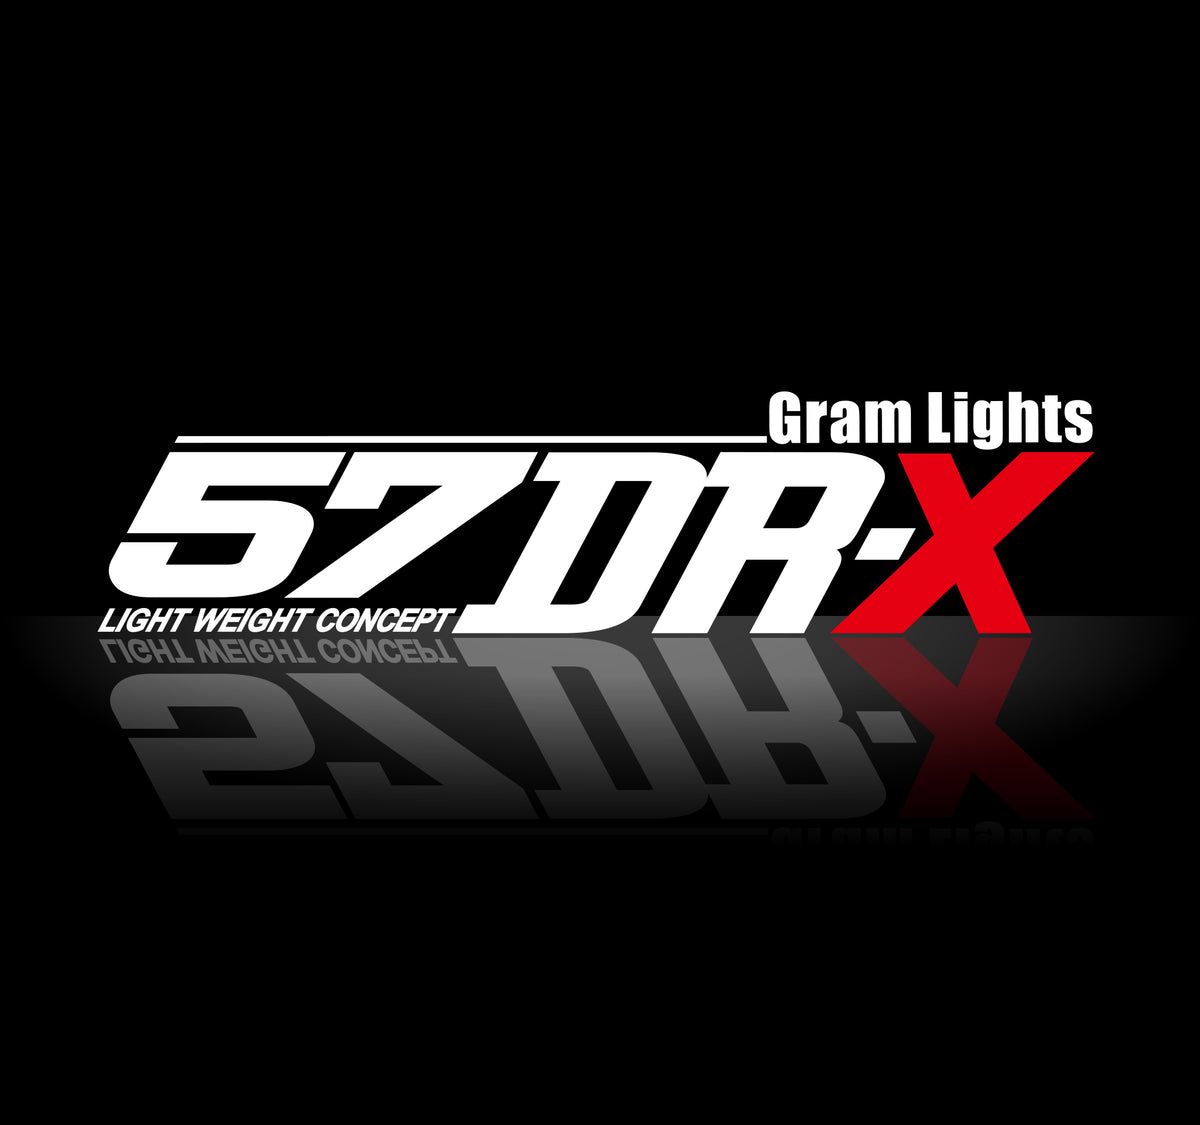 RAYS GRAM LIGHT 57DR-X | OTR Motorsports - Performance parts, tuning and mechanical supplies